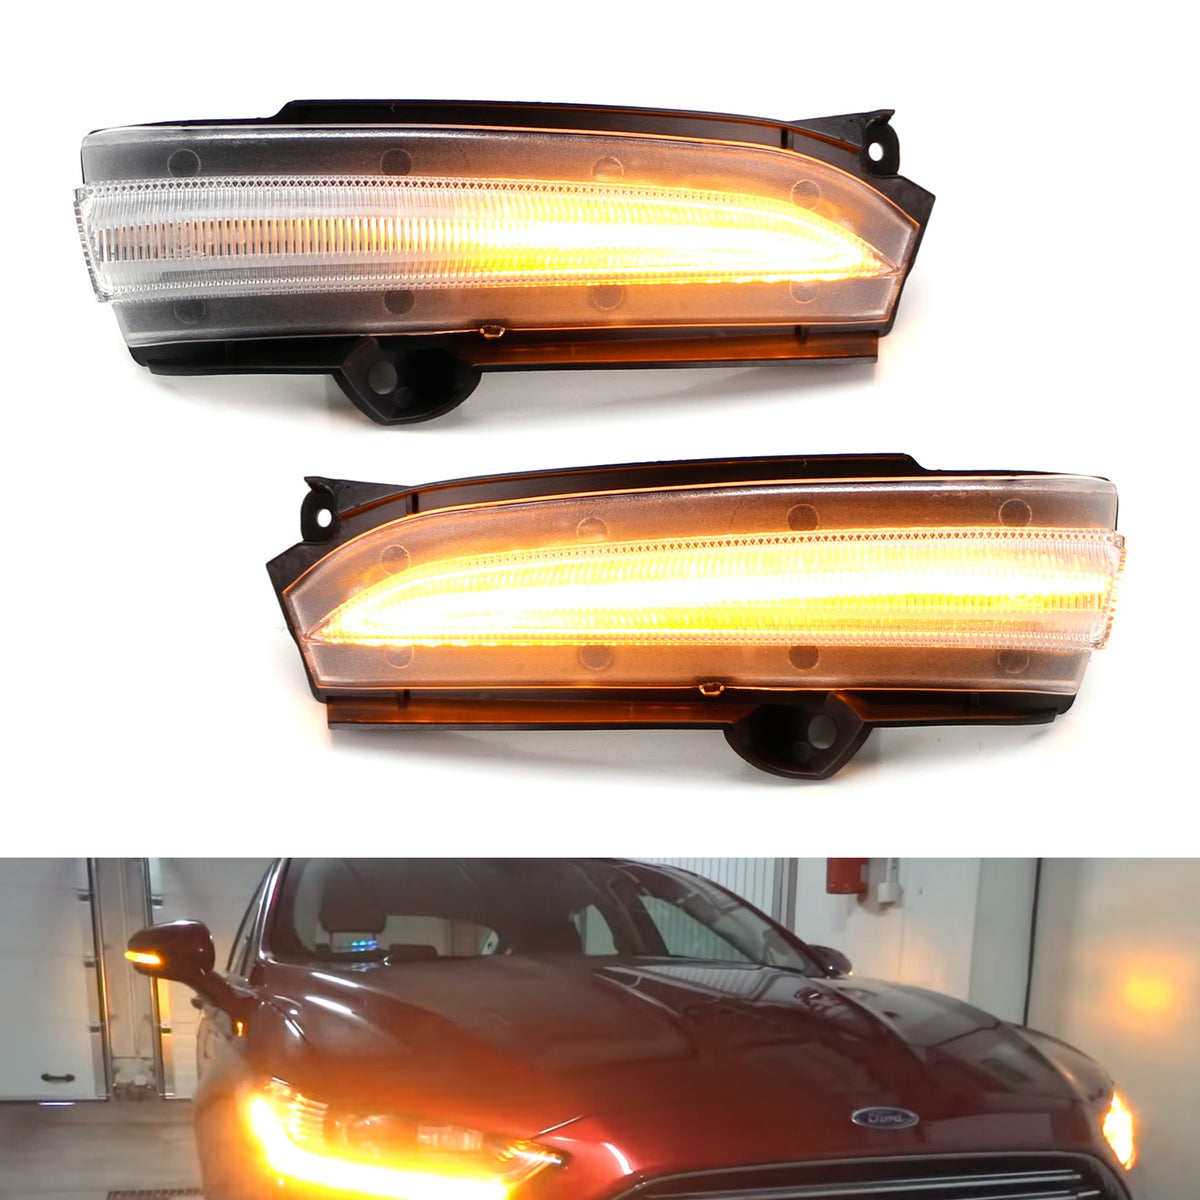 Jinfili Sequential Dynamic LED Turn Signal Light Side Mirror Marker Lamp Blinker Indicator Fit for Ford Kuga Ecosport 2013-2018